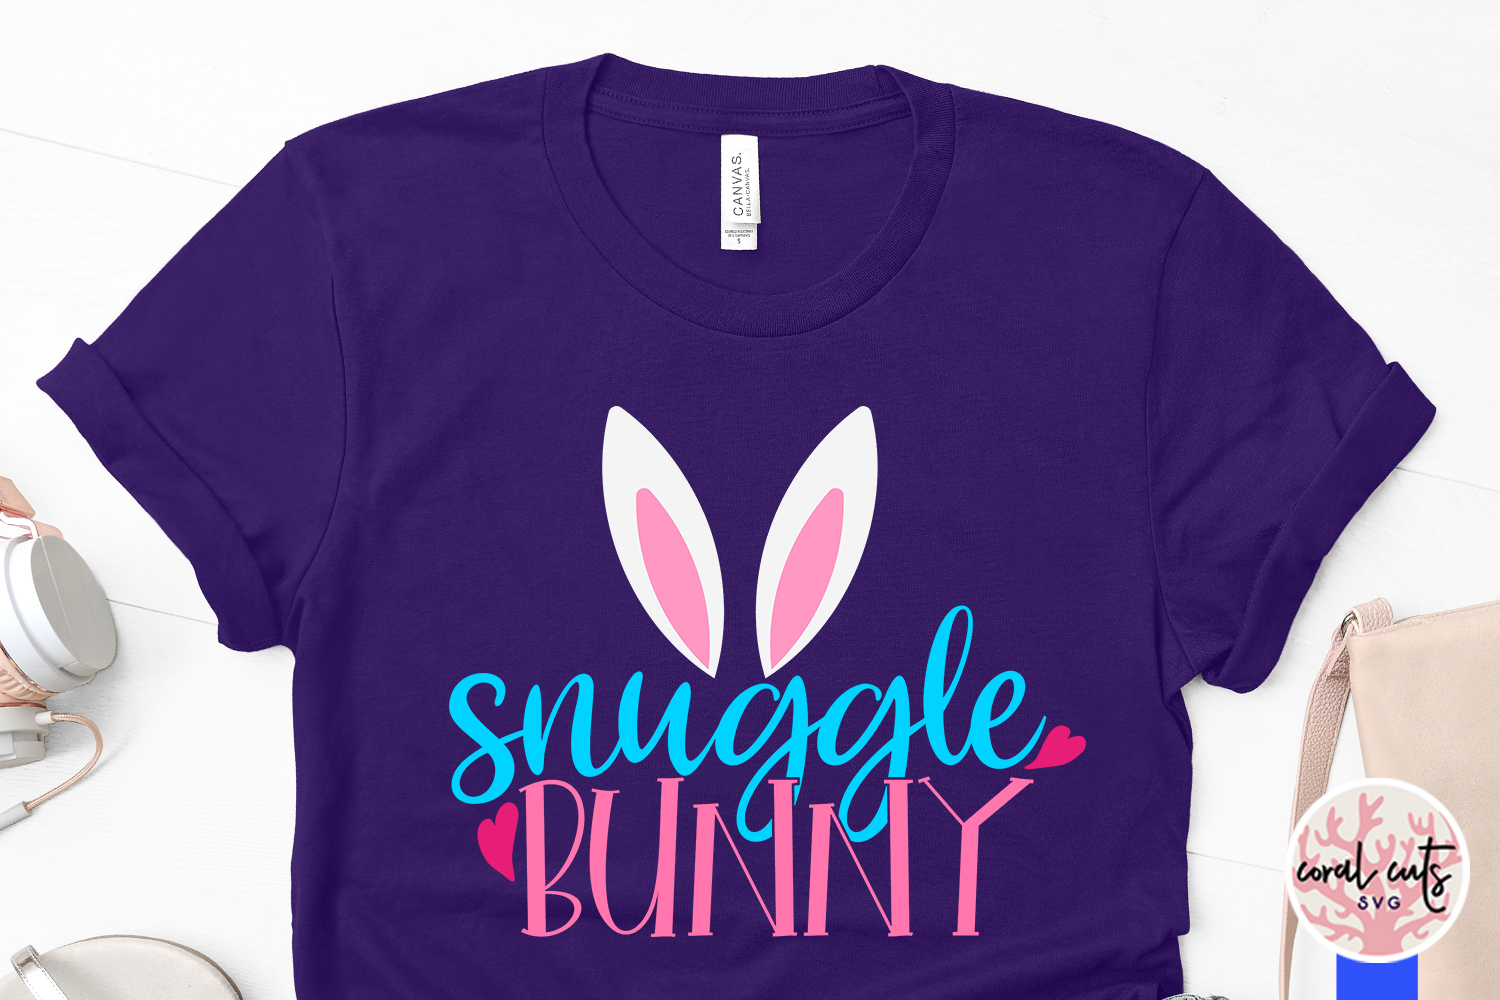 Snuggle bunny - Easter SVG EPS DXF PNG Cutting File example image 3